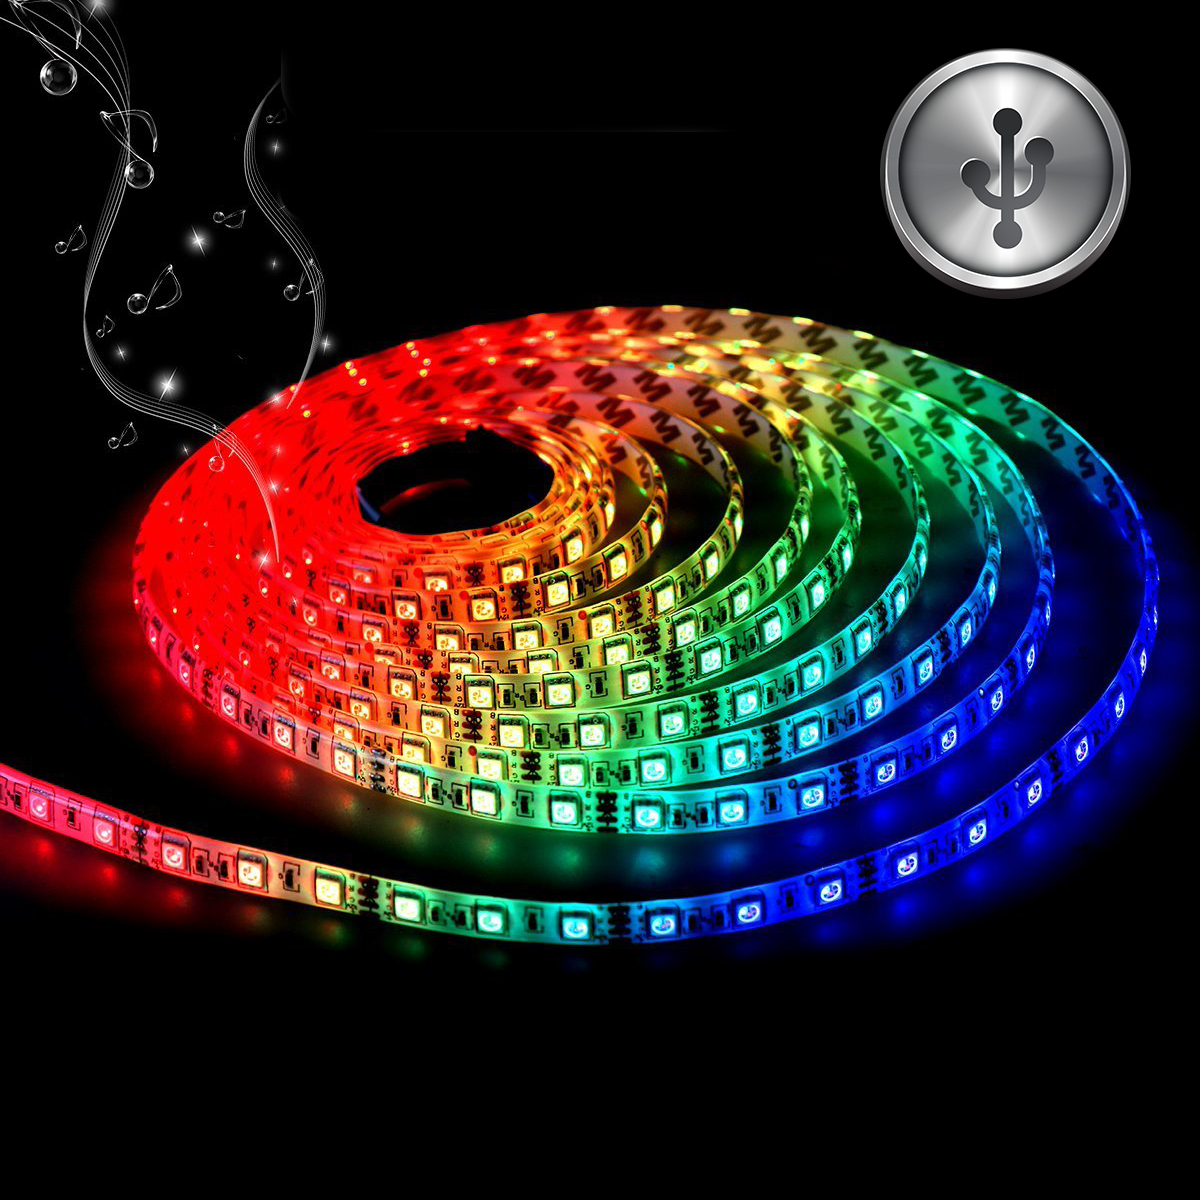 TSV LED TV Backlight, USB LED Strip Lights 3.2t 1M 5050 RGB Light Strips Kit Bias Lighting with Remote Control for HDTV, Flat Screen TV Accessories Desktop Monitors PC, Multi Color